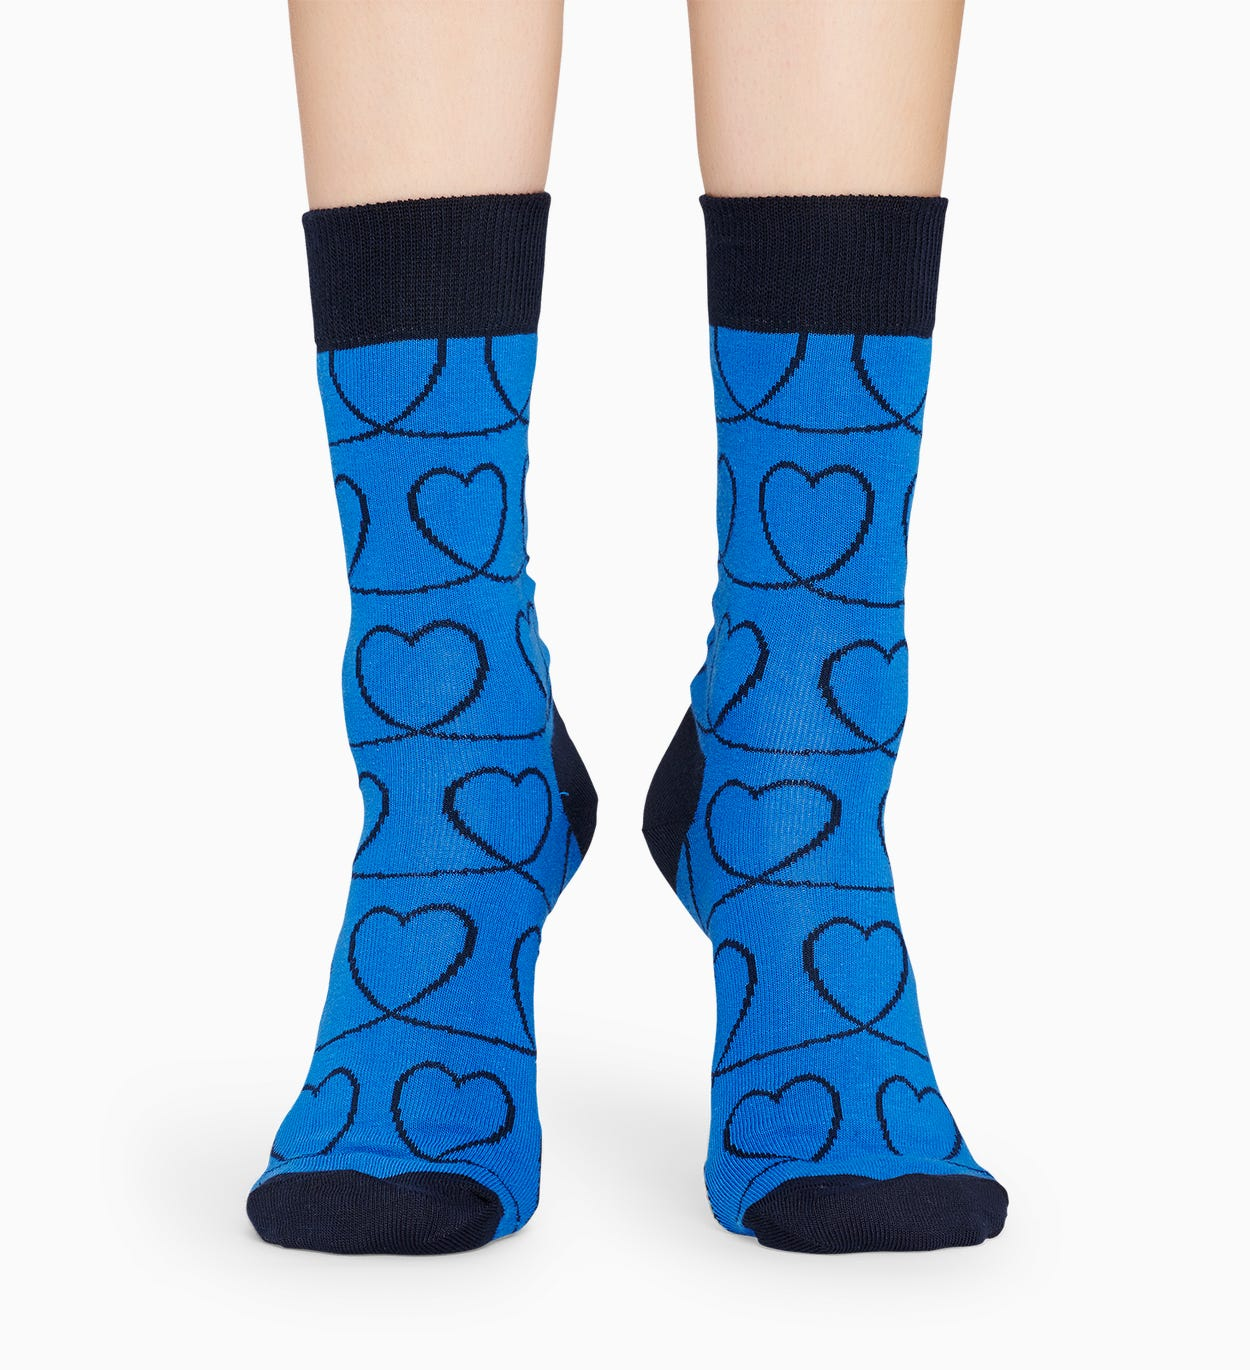 Blaue Baumwollsocken: Loveline Muster | Happy Socks